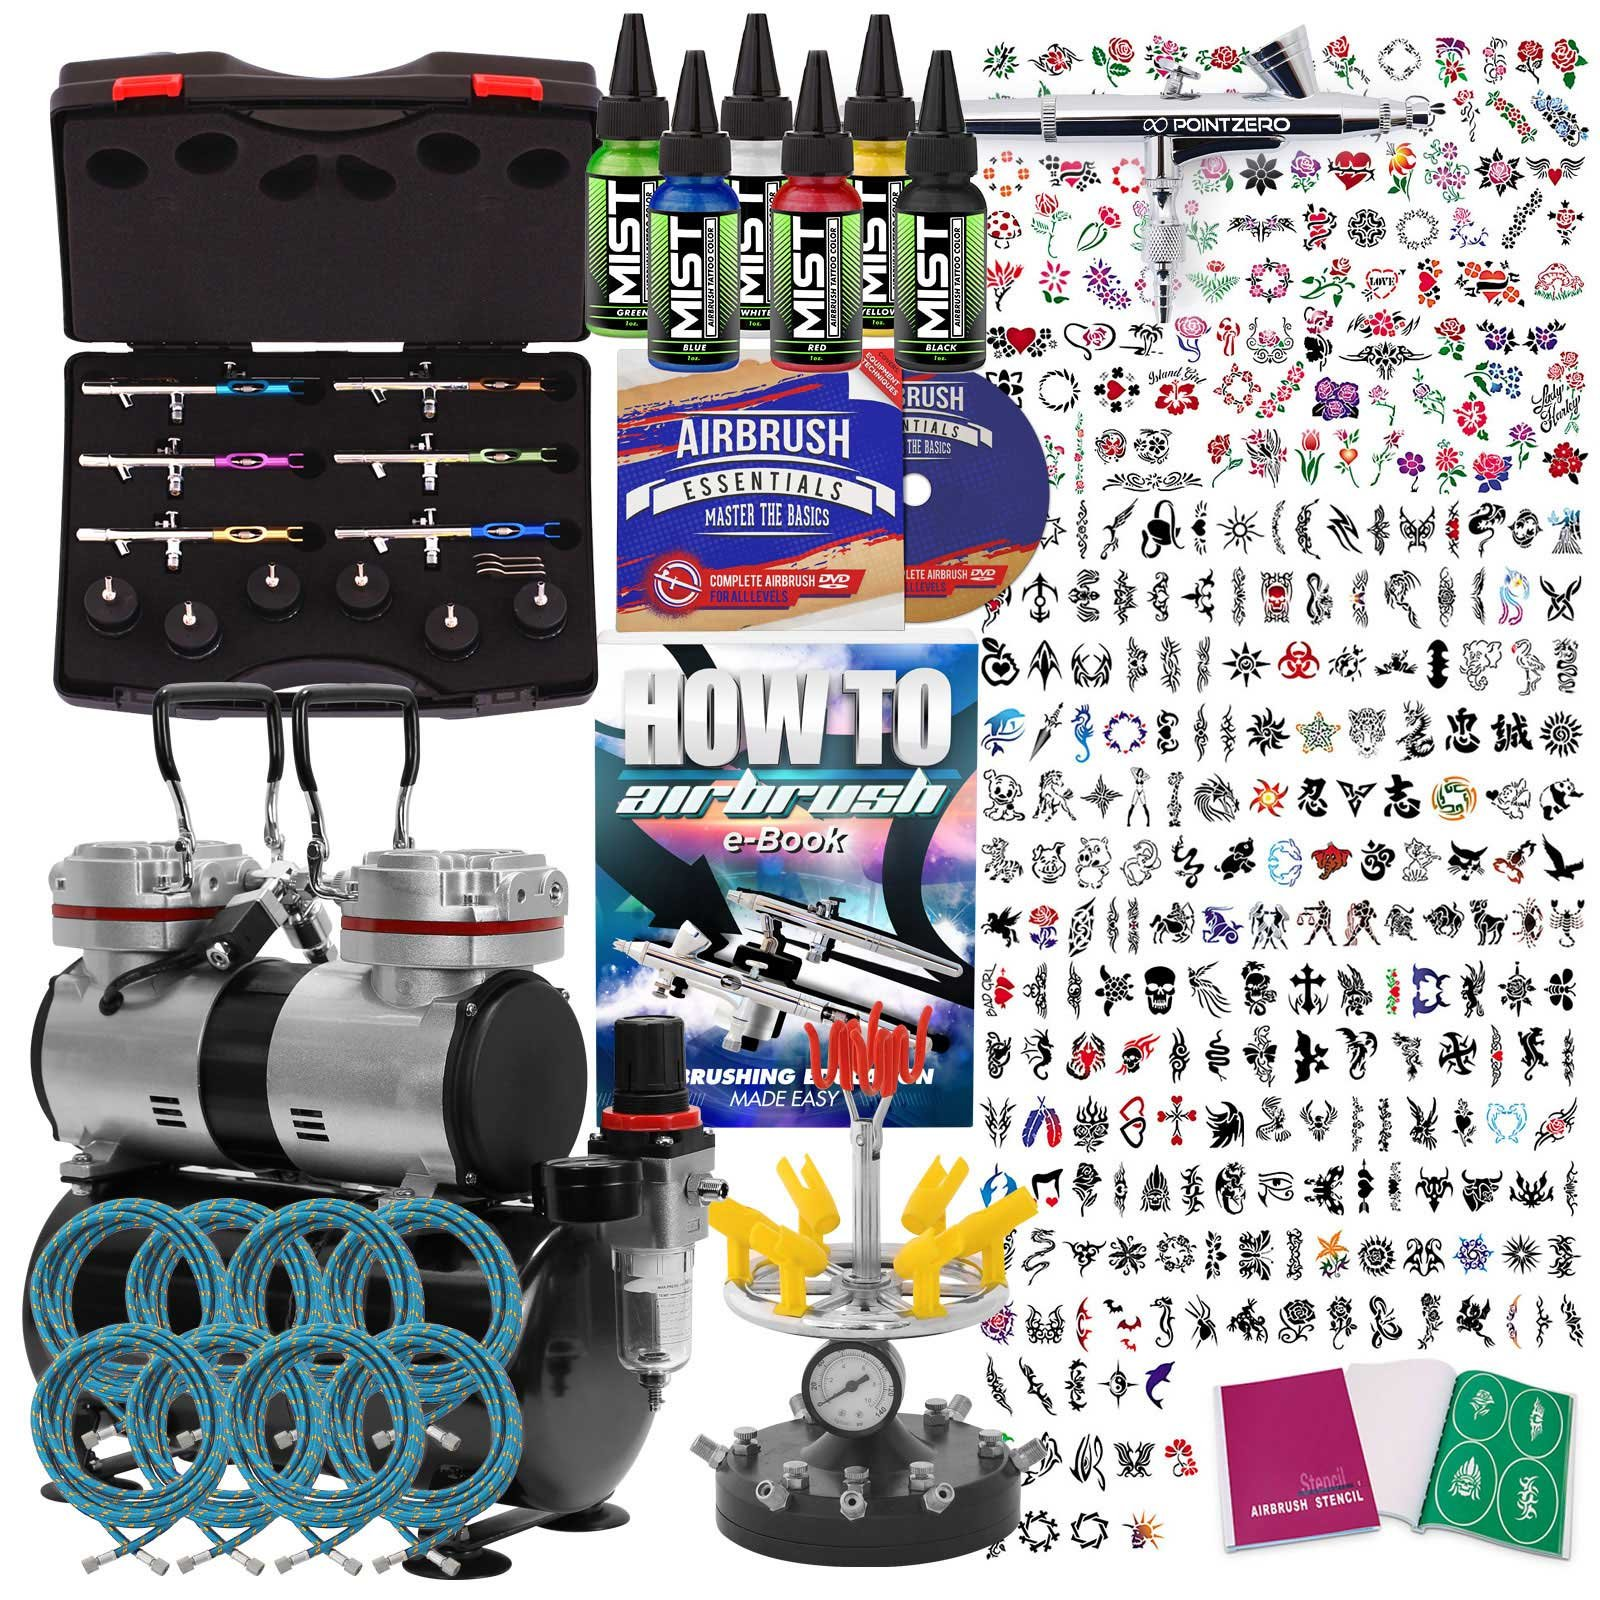 PointZero Complete Temporary Tattoo Airbrush Set - 6 Airbrushes with Compressor and 300 Stencils